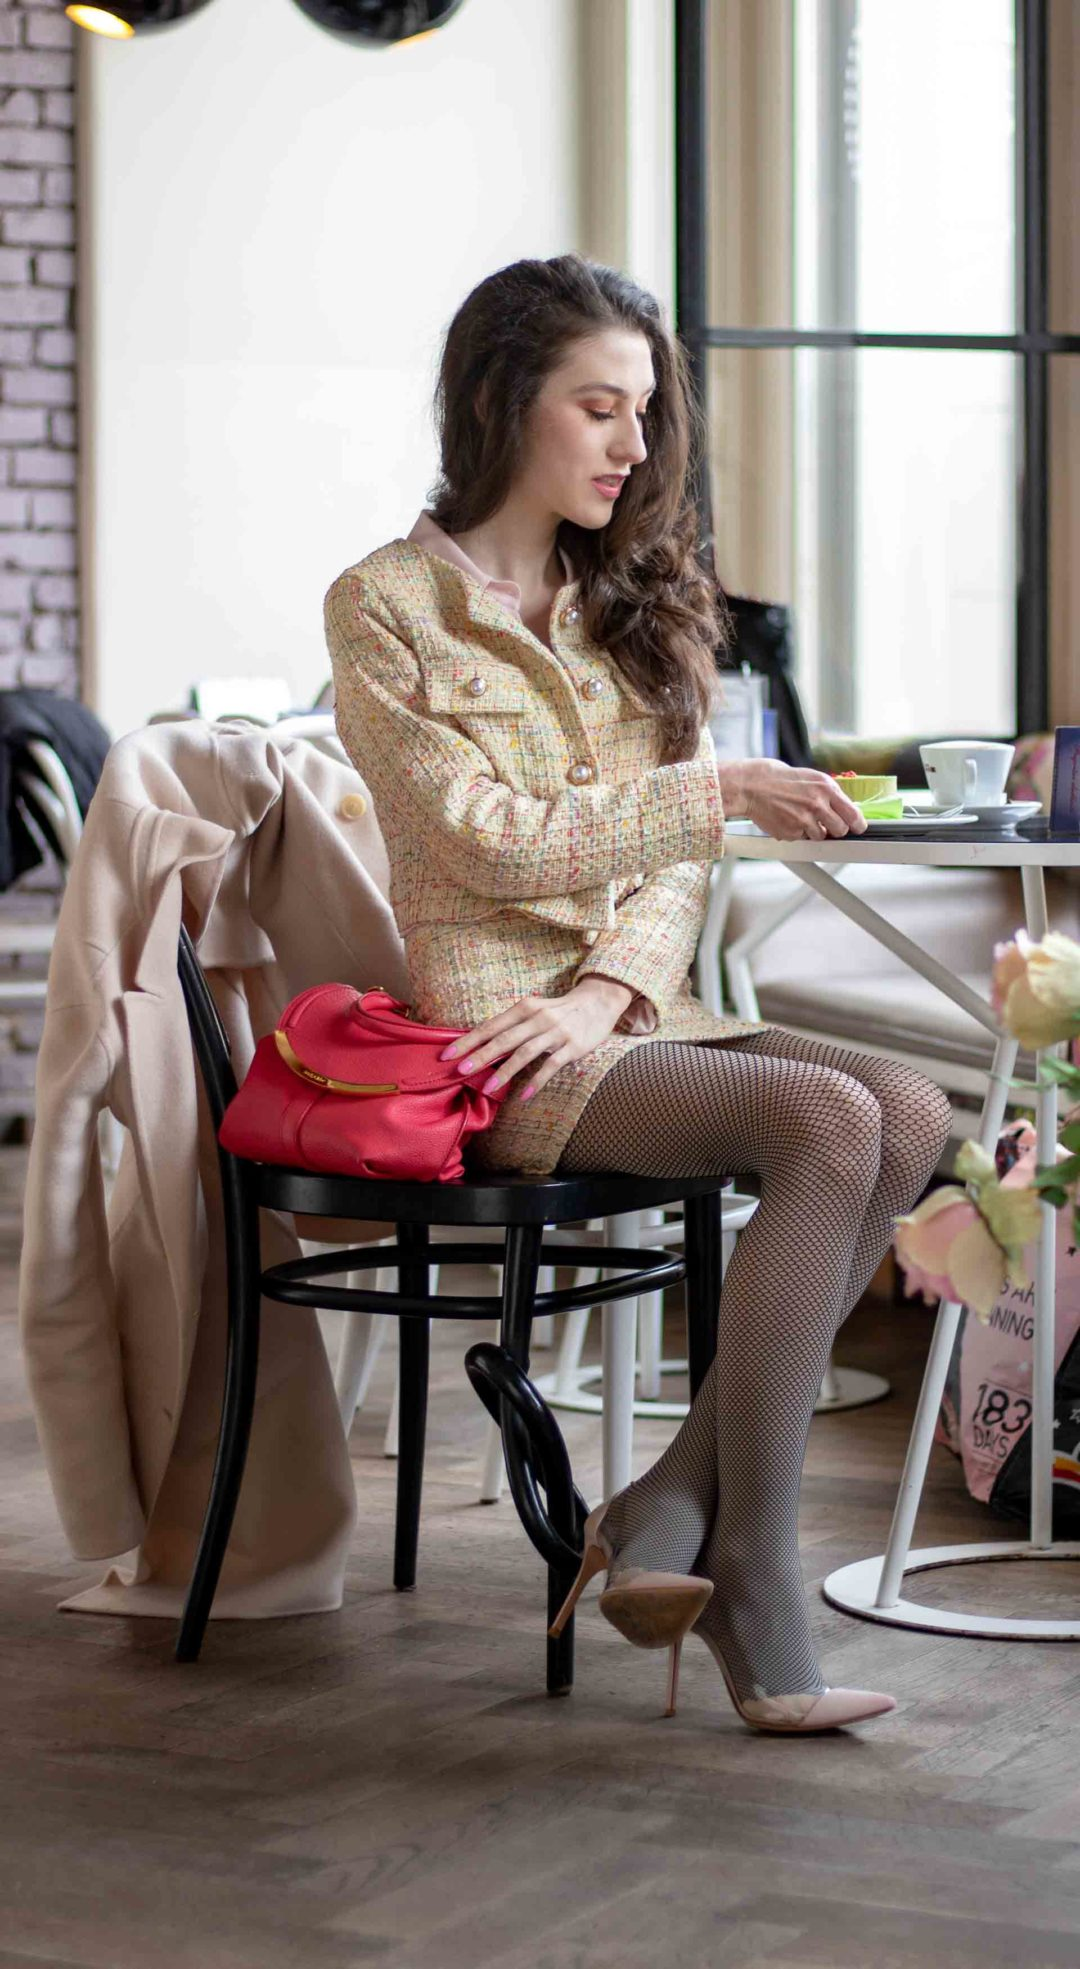 Must follow fashion blogger Veronika Lipar of Brunette from Wall Street dressed in yellow tweed skirt suit, fishnets, Gianvito Rossi plexiglass pumps at Lolita patisserie